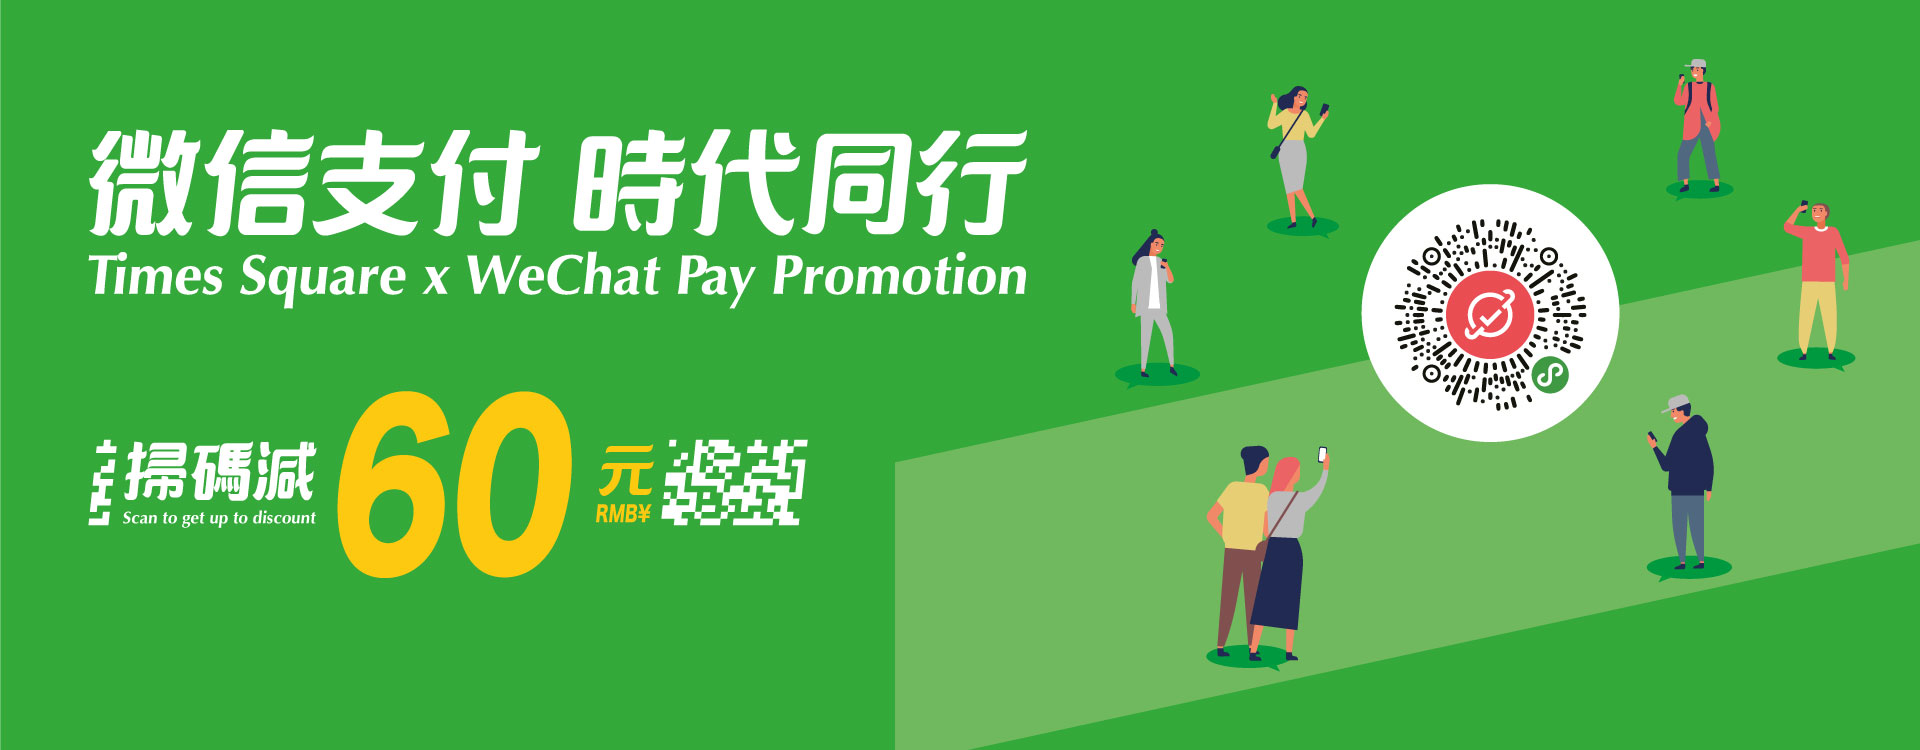 Times Square x WeChat Pay Promotion